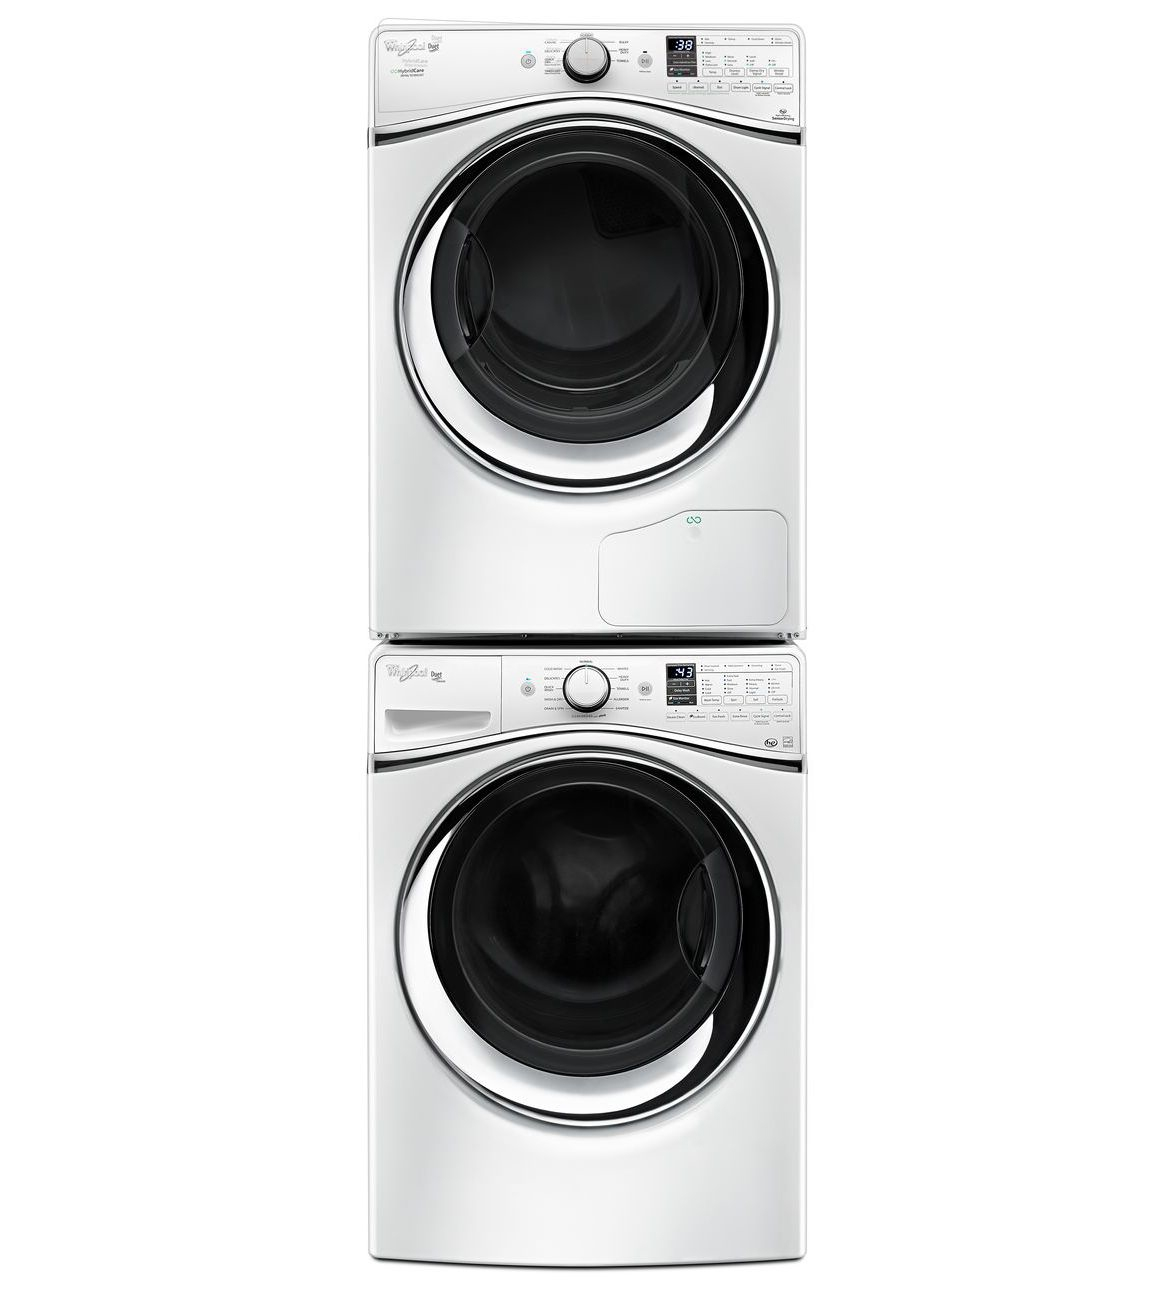 Whirlpool White Duet Electric Dryer